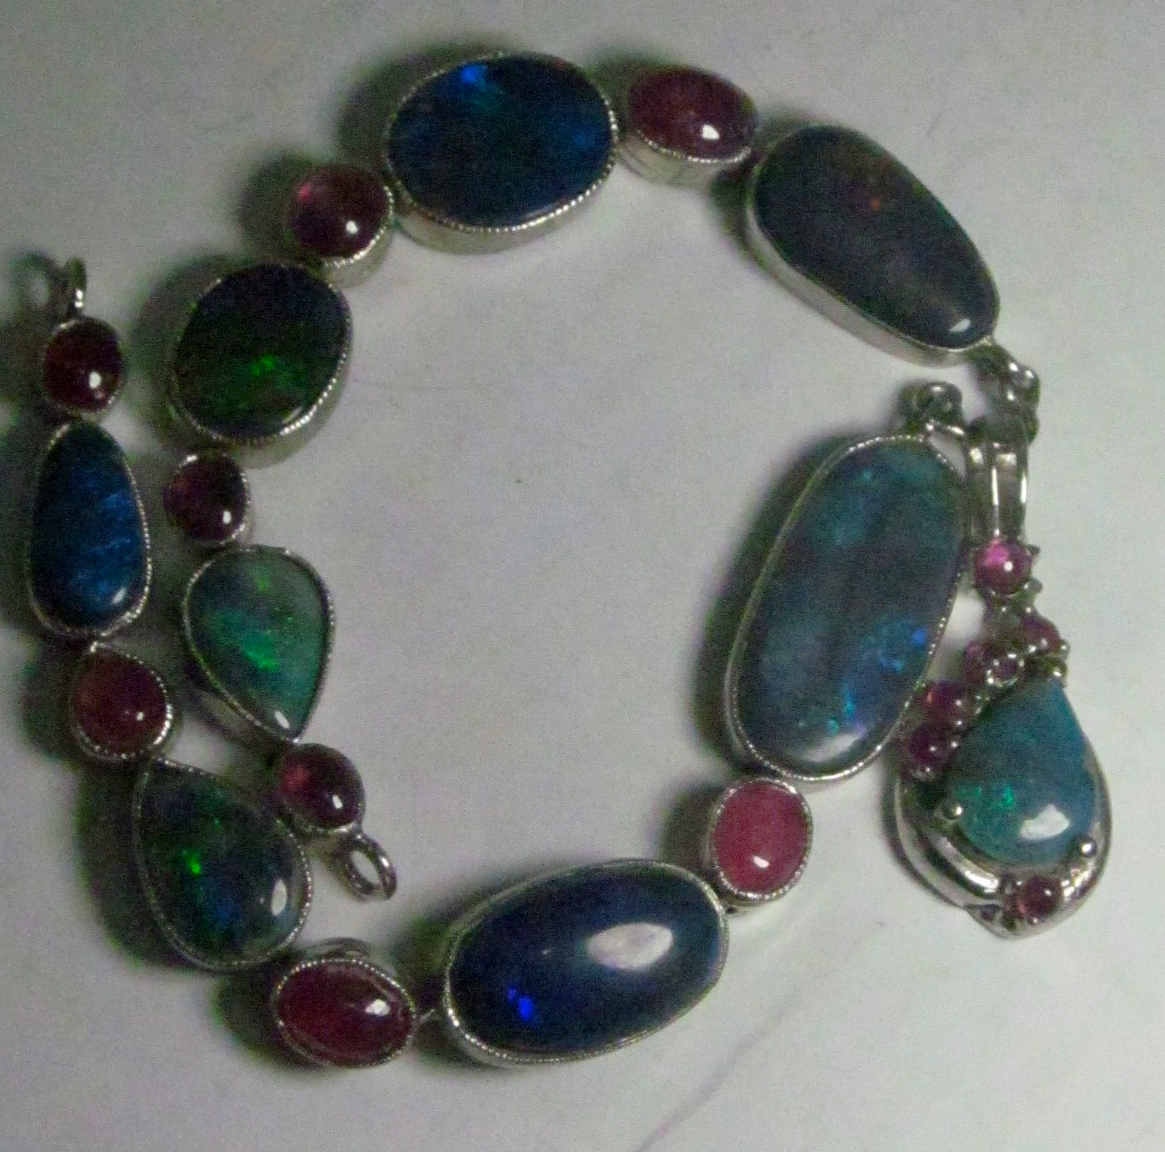 Jewelry opal necklace,opal jewelry